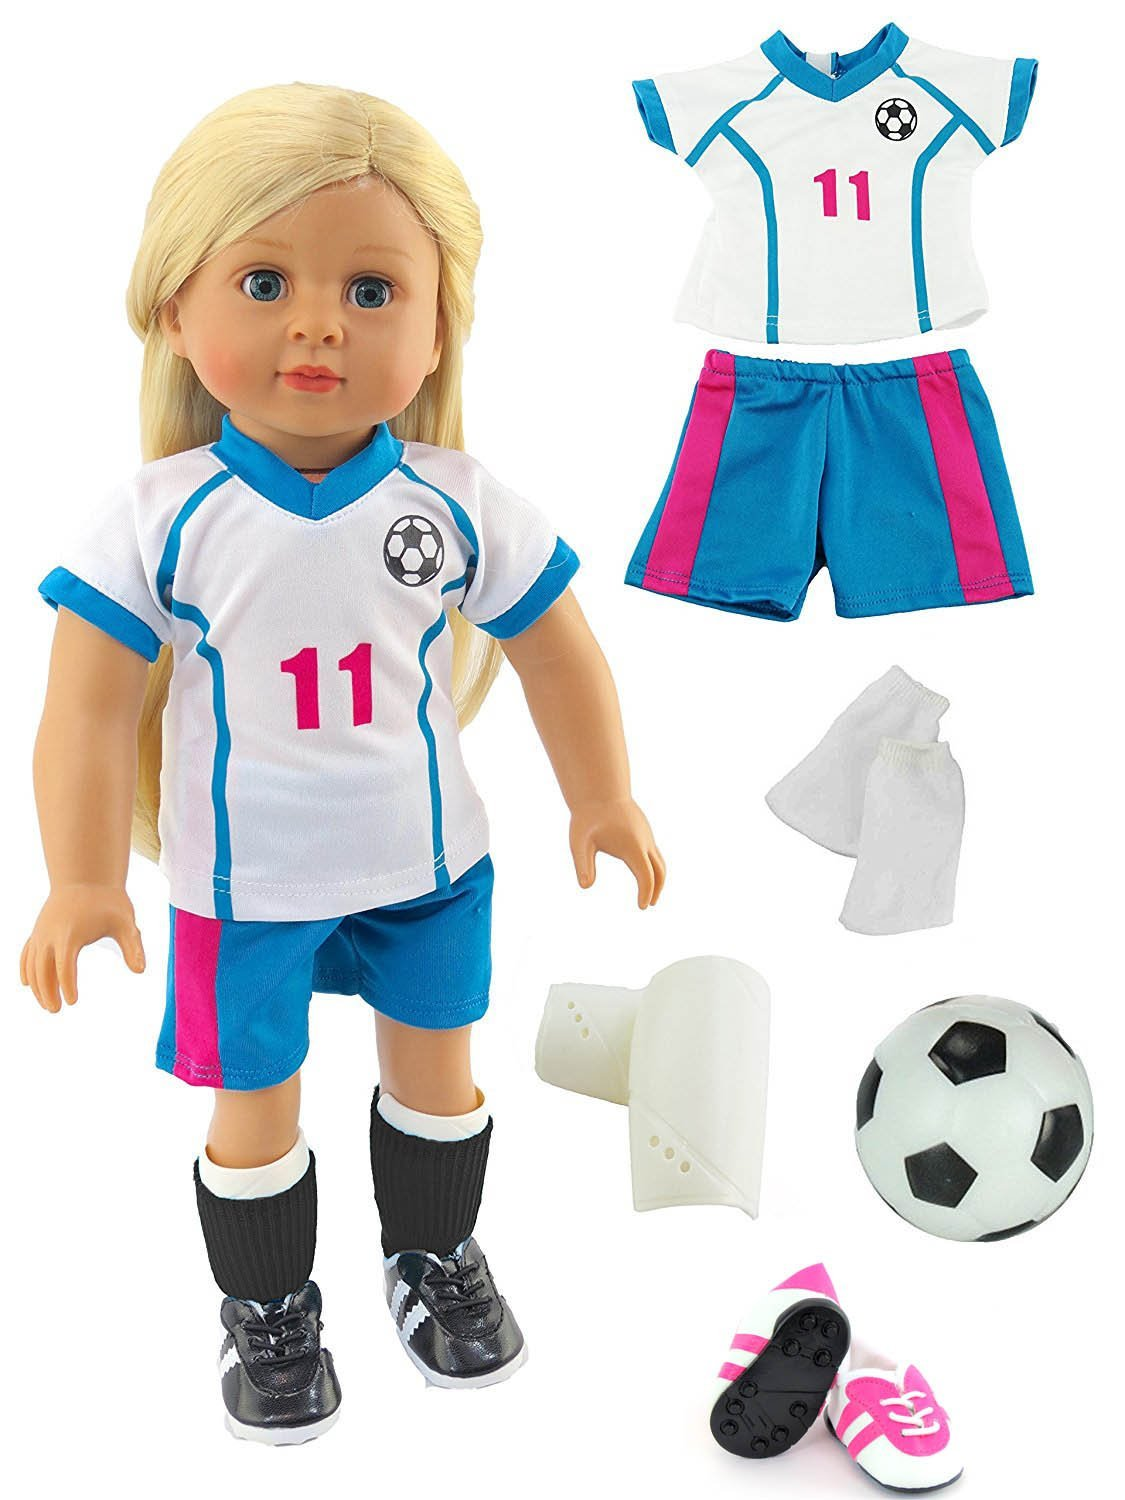 Pink & Teal Soccer Player Outfit with Uniform, Shin Guards, Socks, Soccer Ball, and Shoes... by